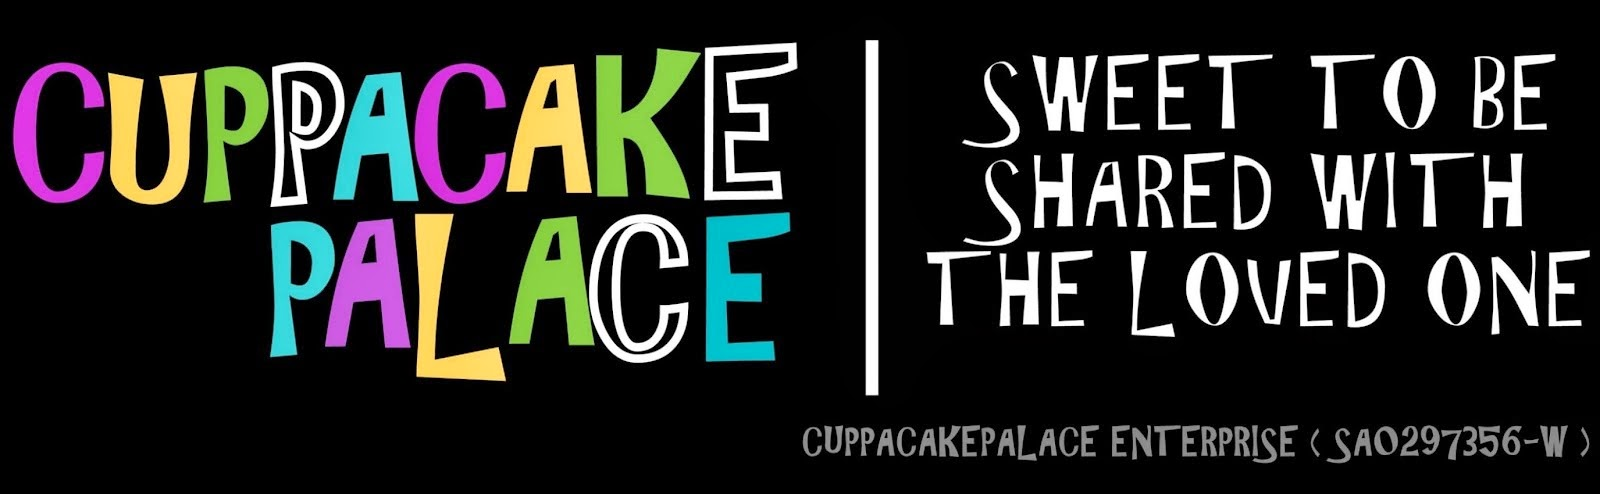 cuppacakepalace